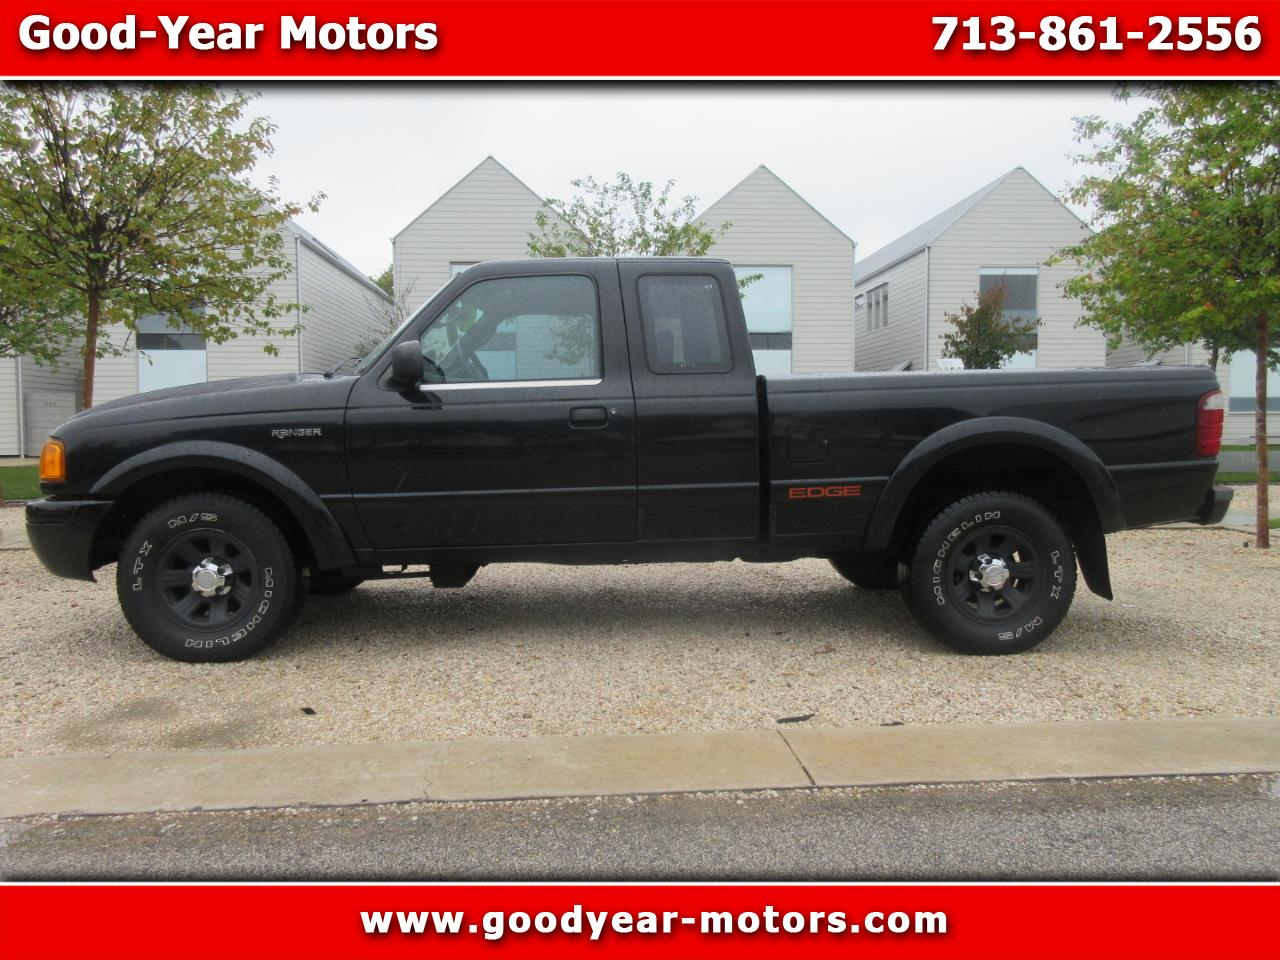 2003 Ford Ranger Edge SuperCab 2WD - 371A